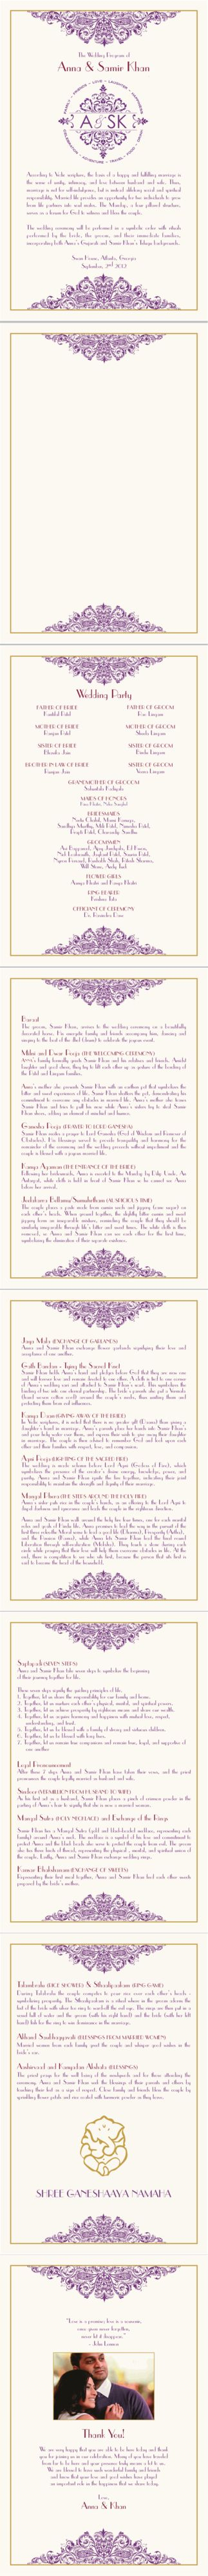 Photo Indian Wedding Program with the full ceremony description